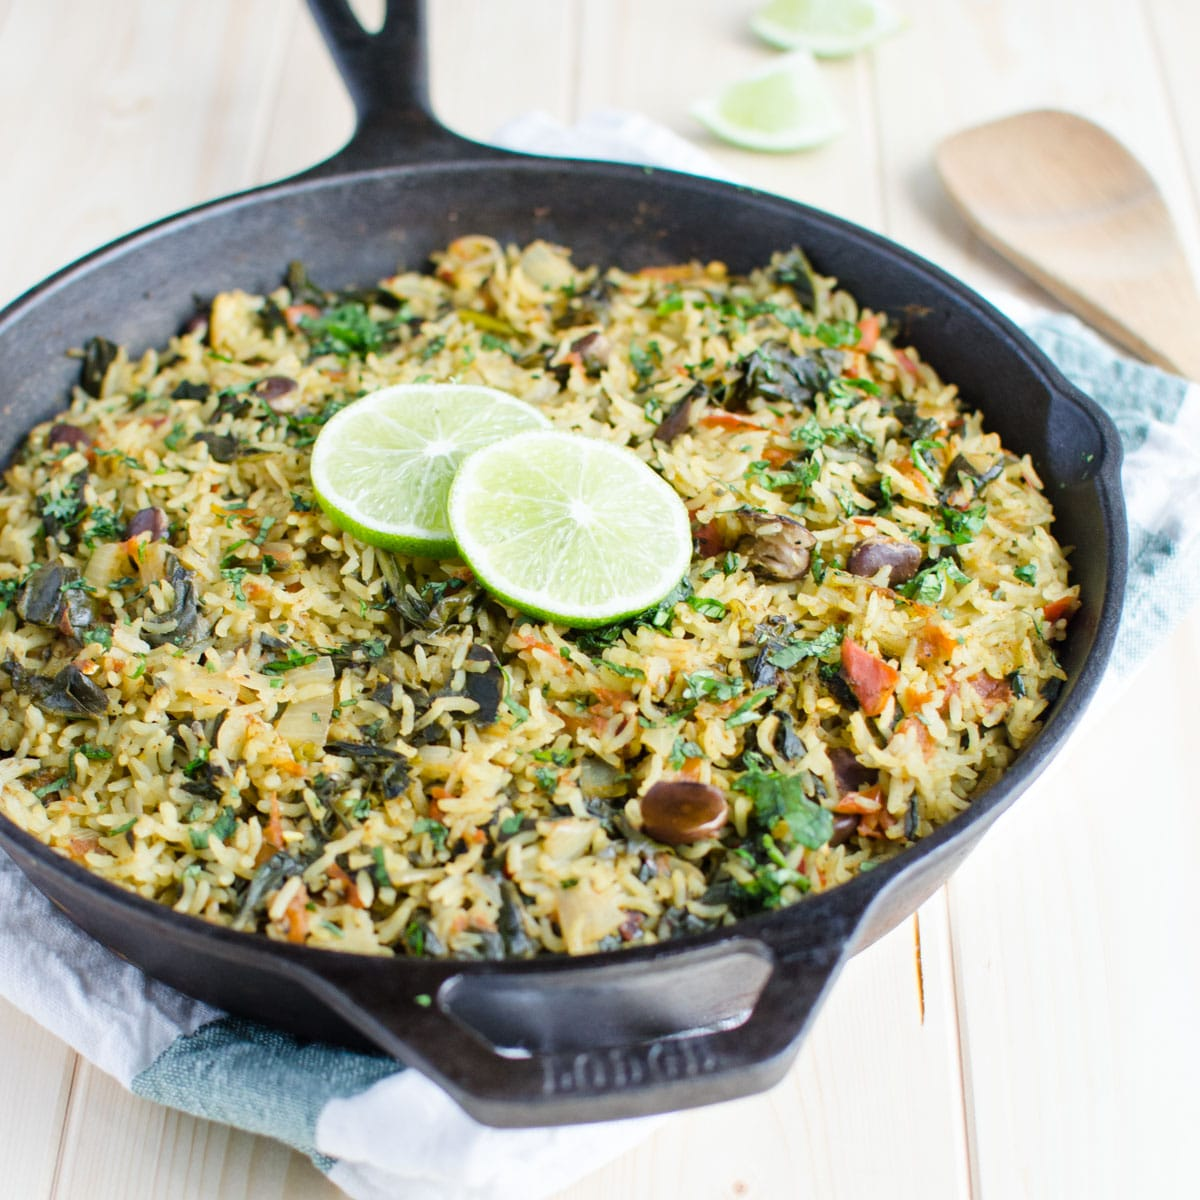 Nutritious And Delicious One Pot Spinach Rice Video Watch What U Eat